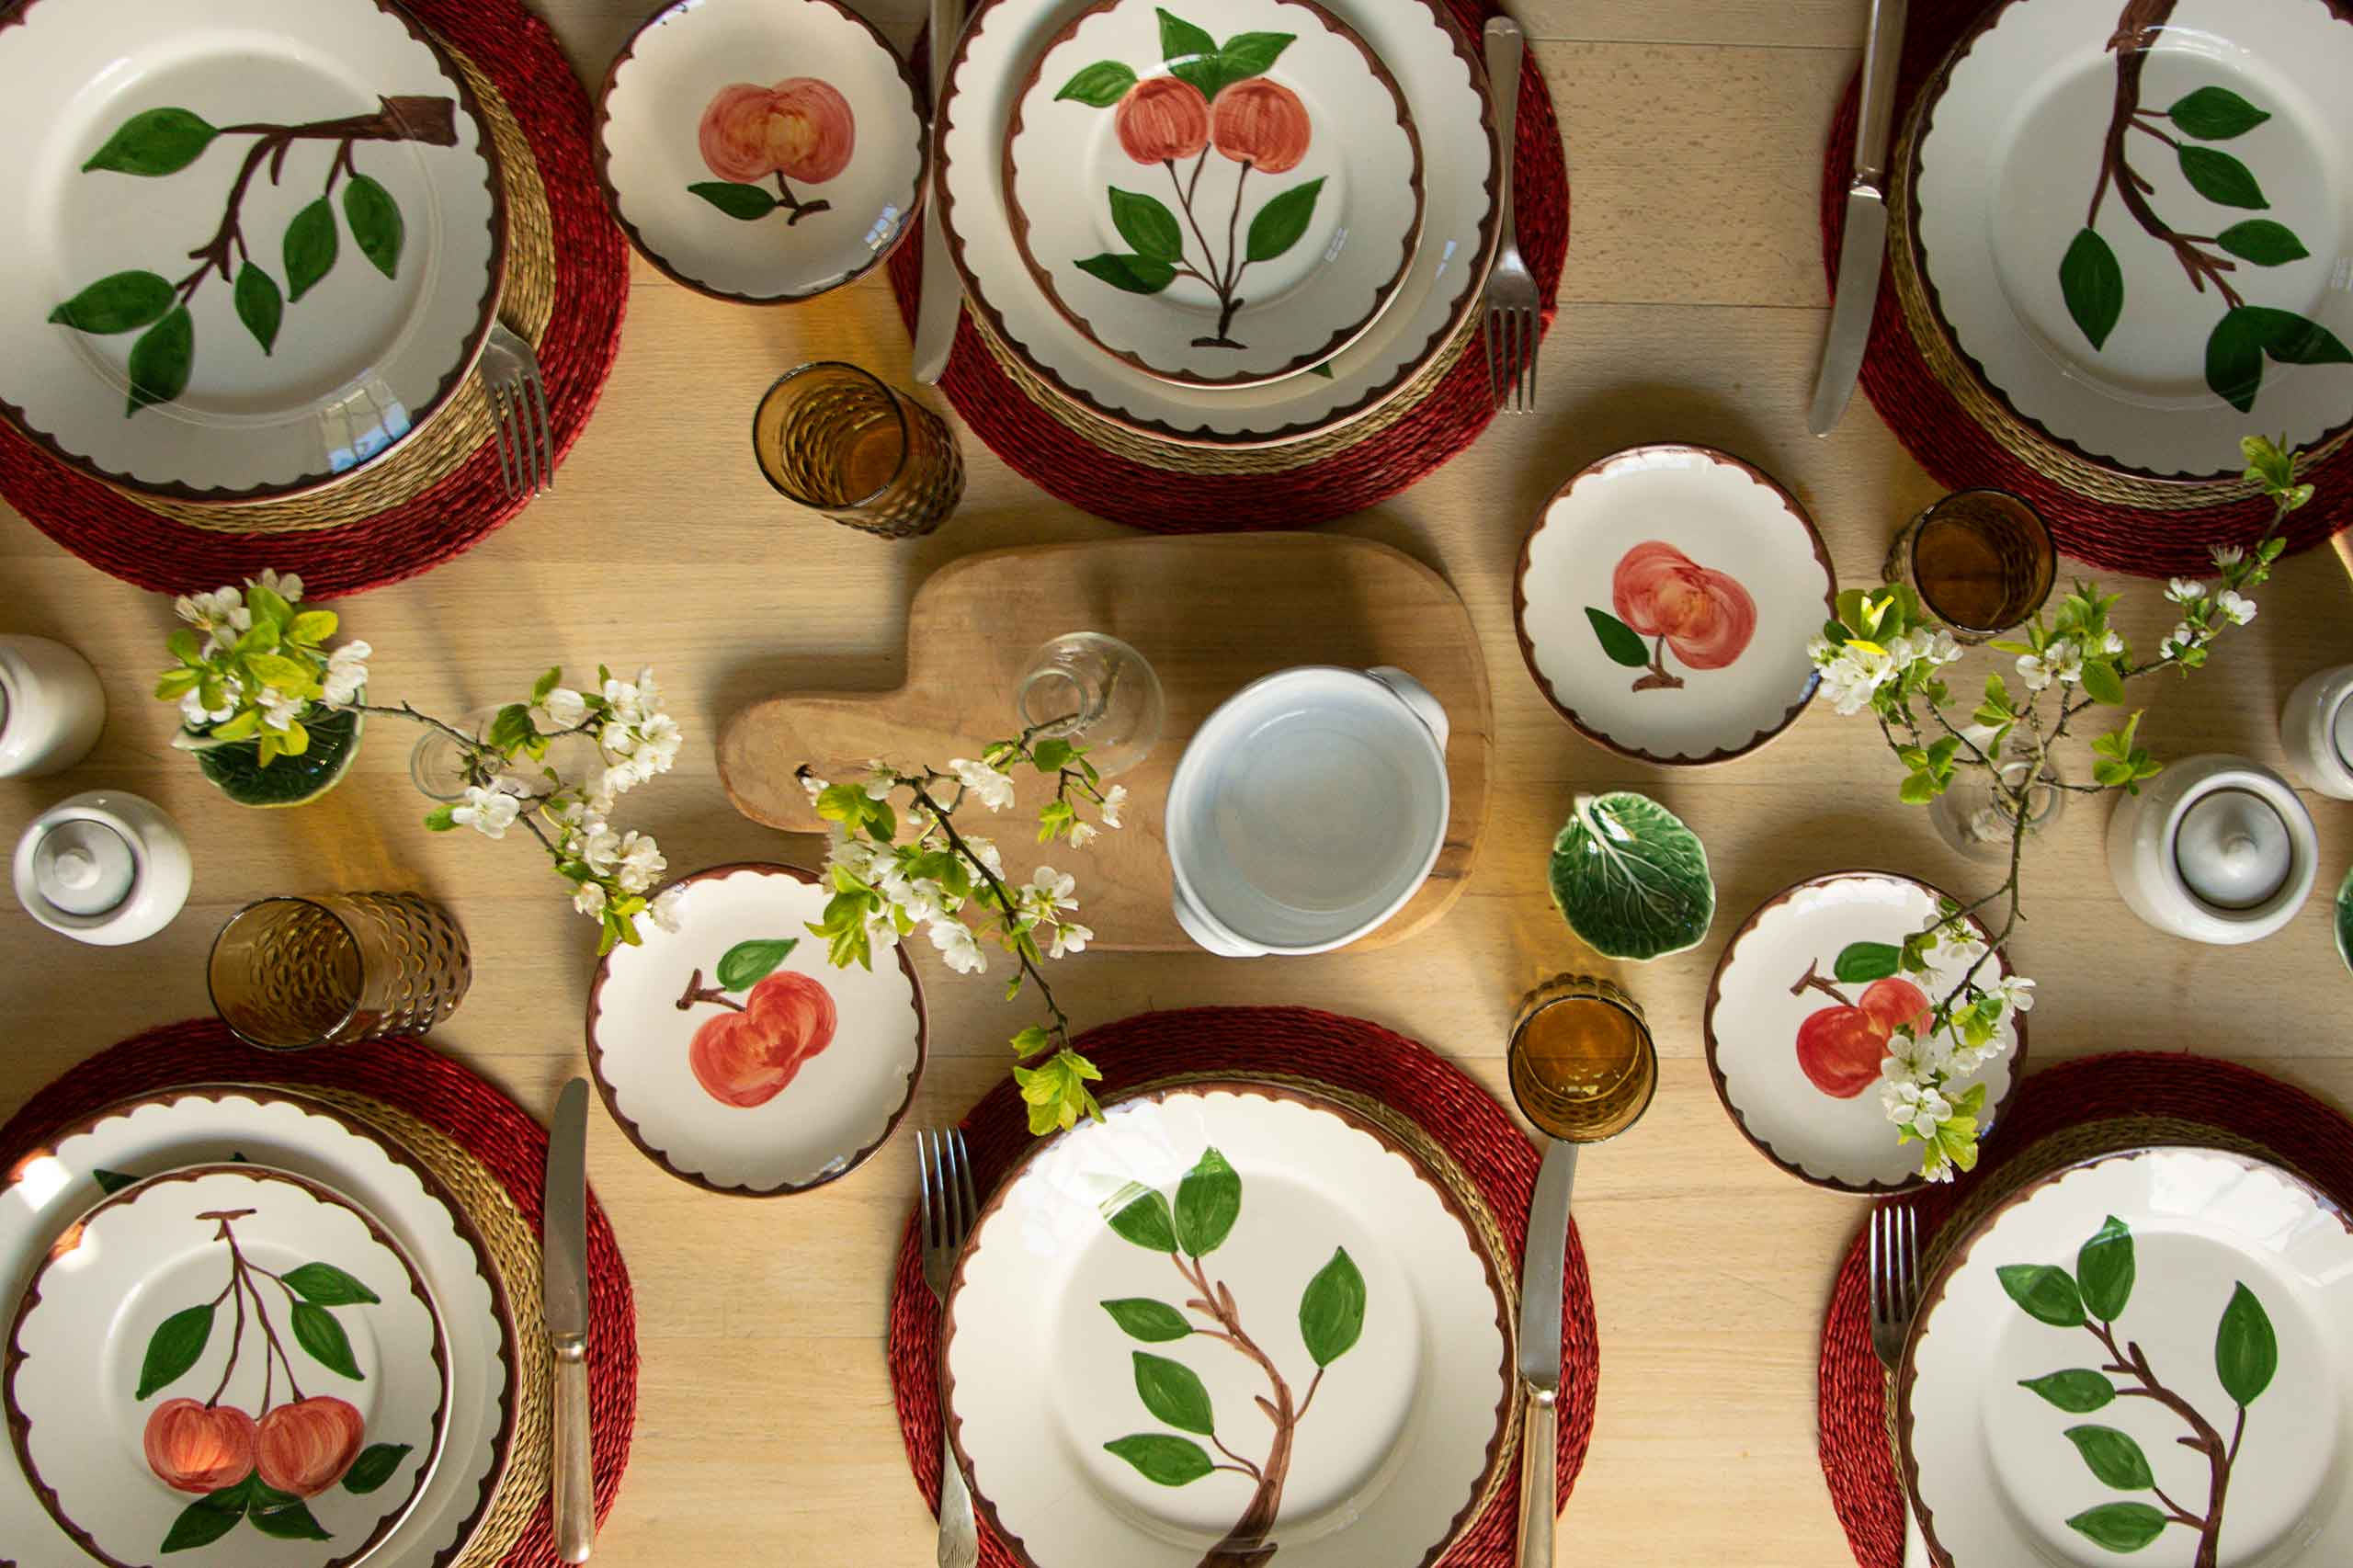 Hand painted plates with apple design on a table set for dinner from Pascale Store